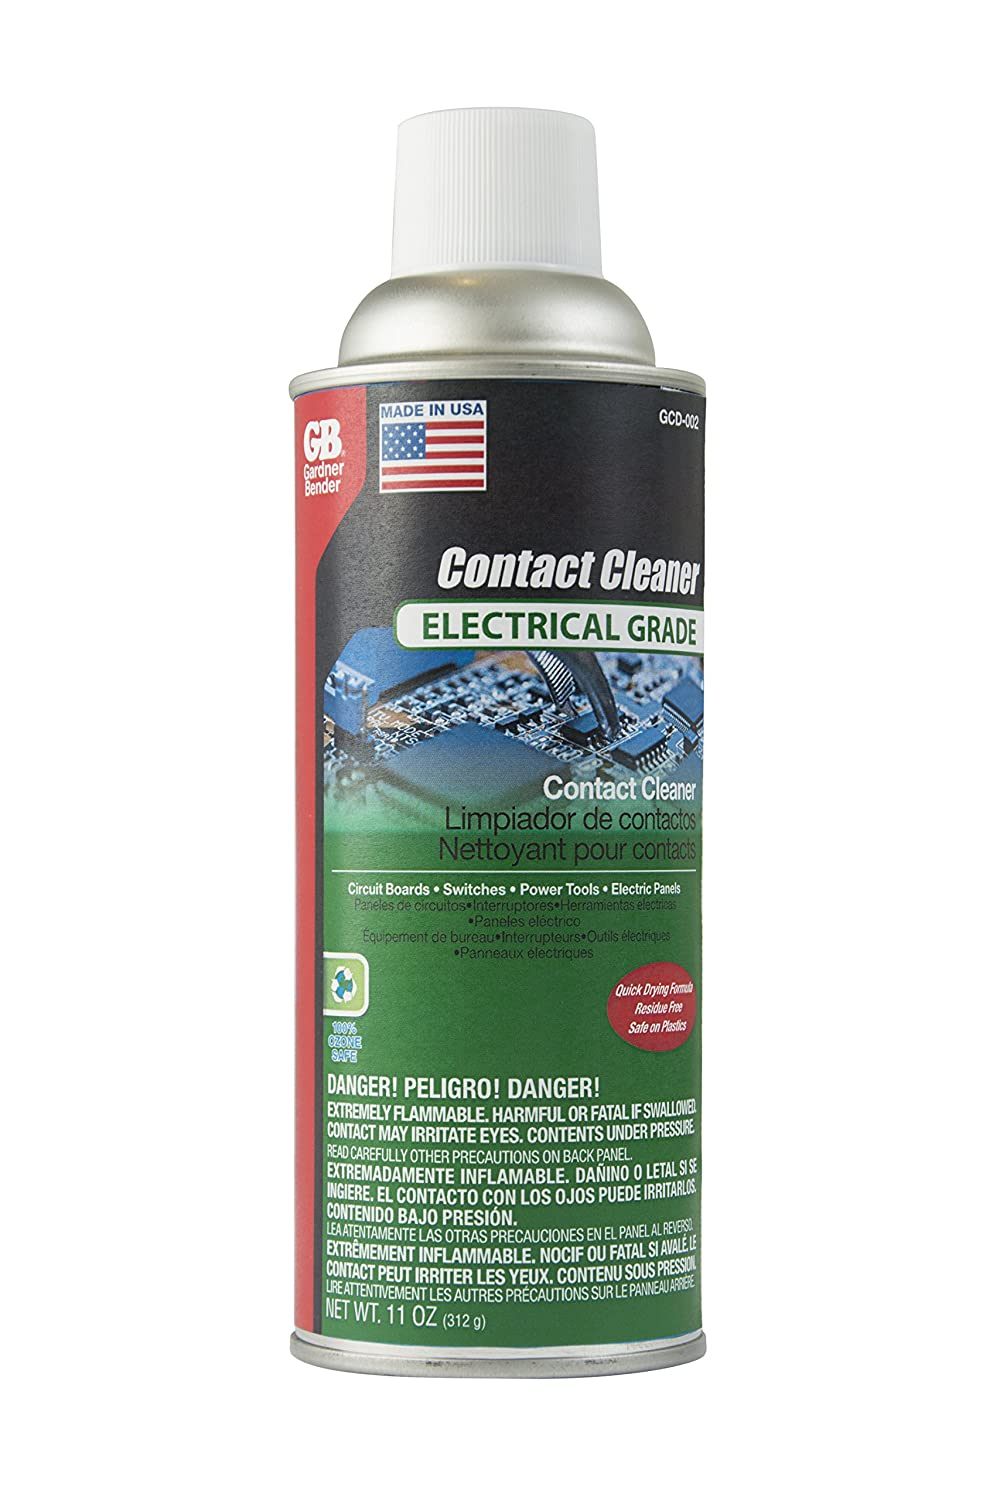 Amazon.com: Gardner Bender GCD-004 Electrical Degreaser, Cleans Electrical Contacts & Evaporates Completely, Can: Home Improvement